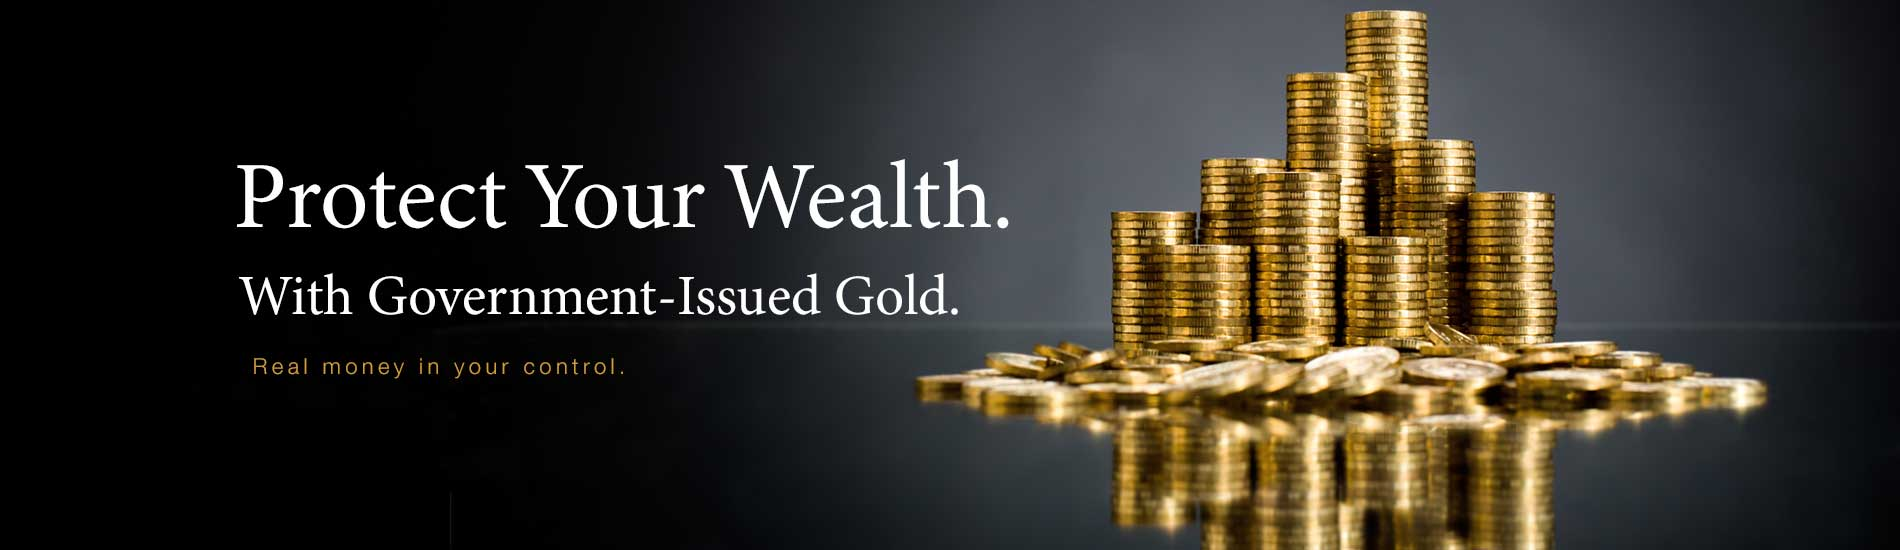 A stack of gold coins against a dark background with the text Protect Your Wealth with Government-Issued Gold.